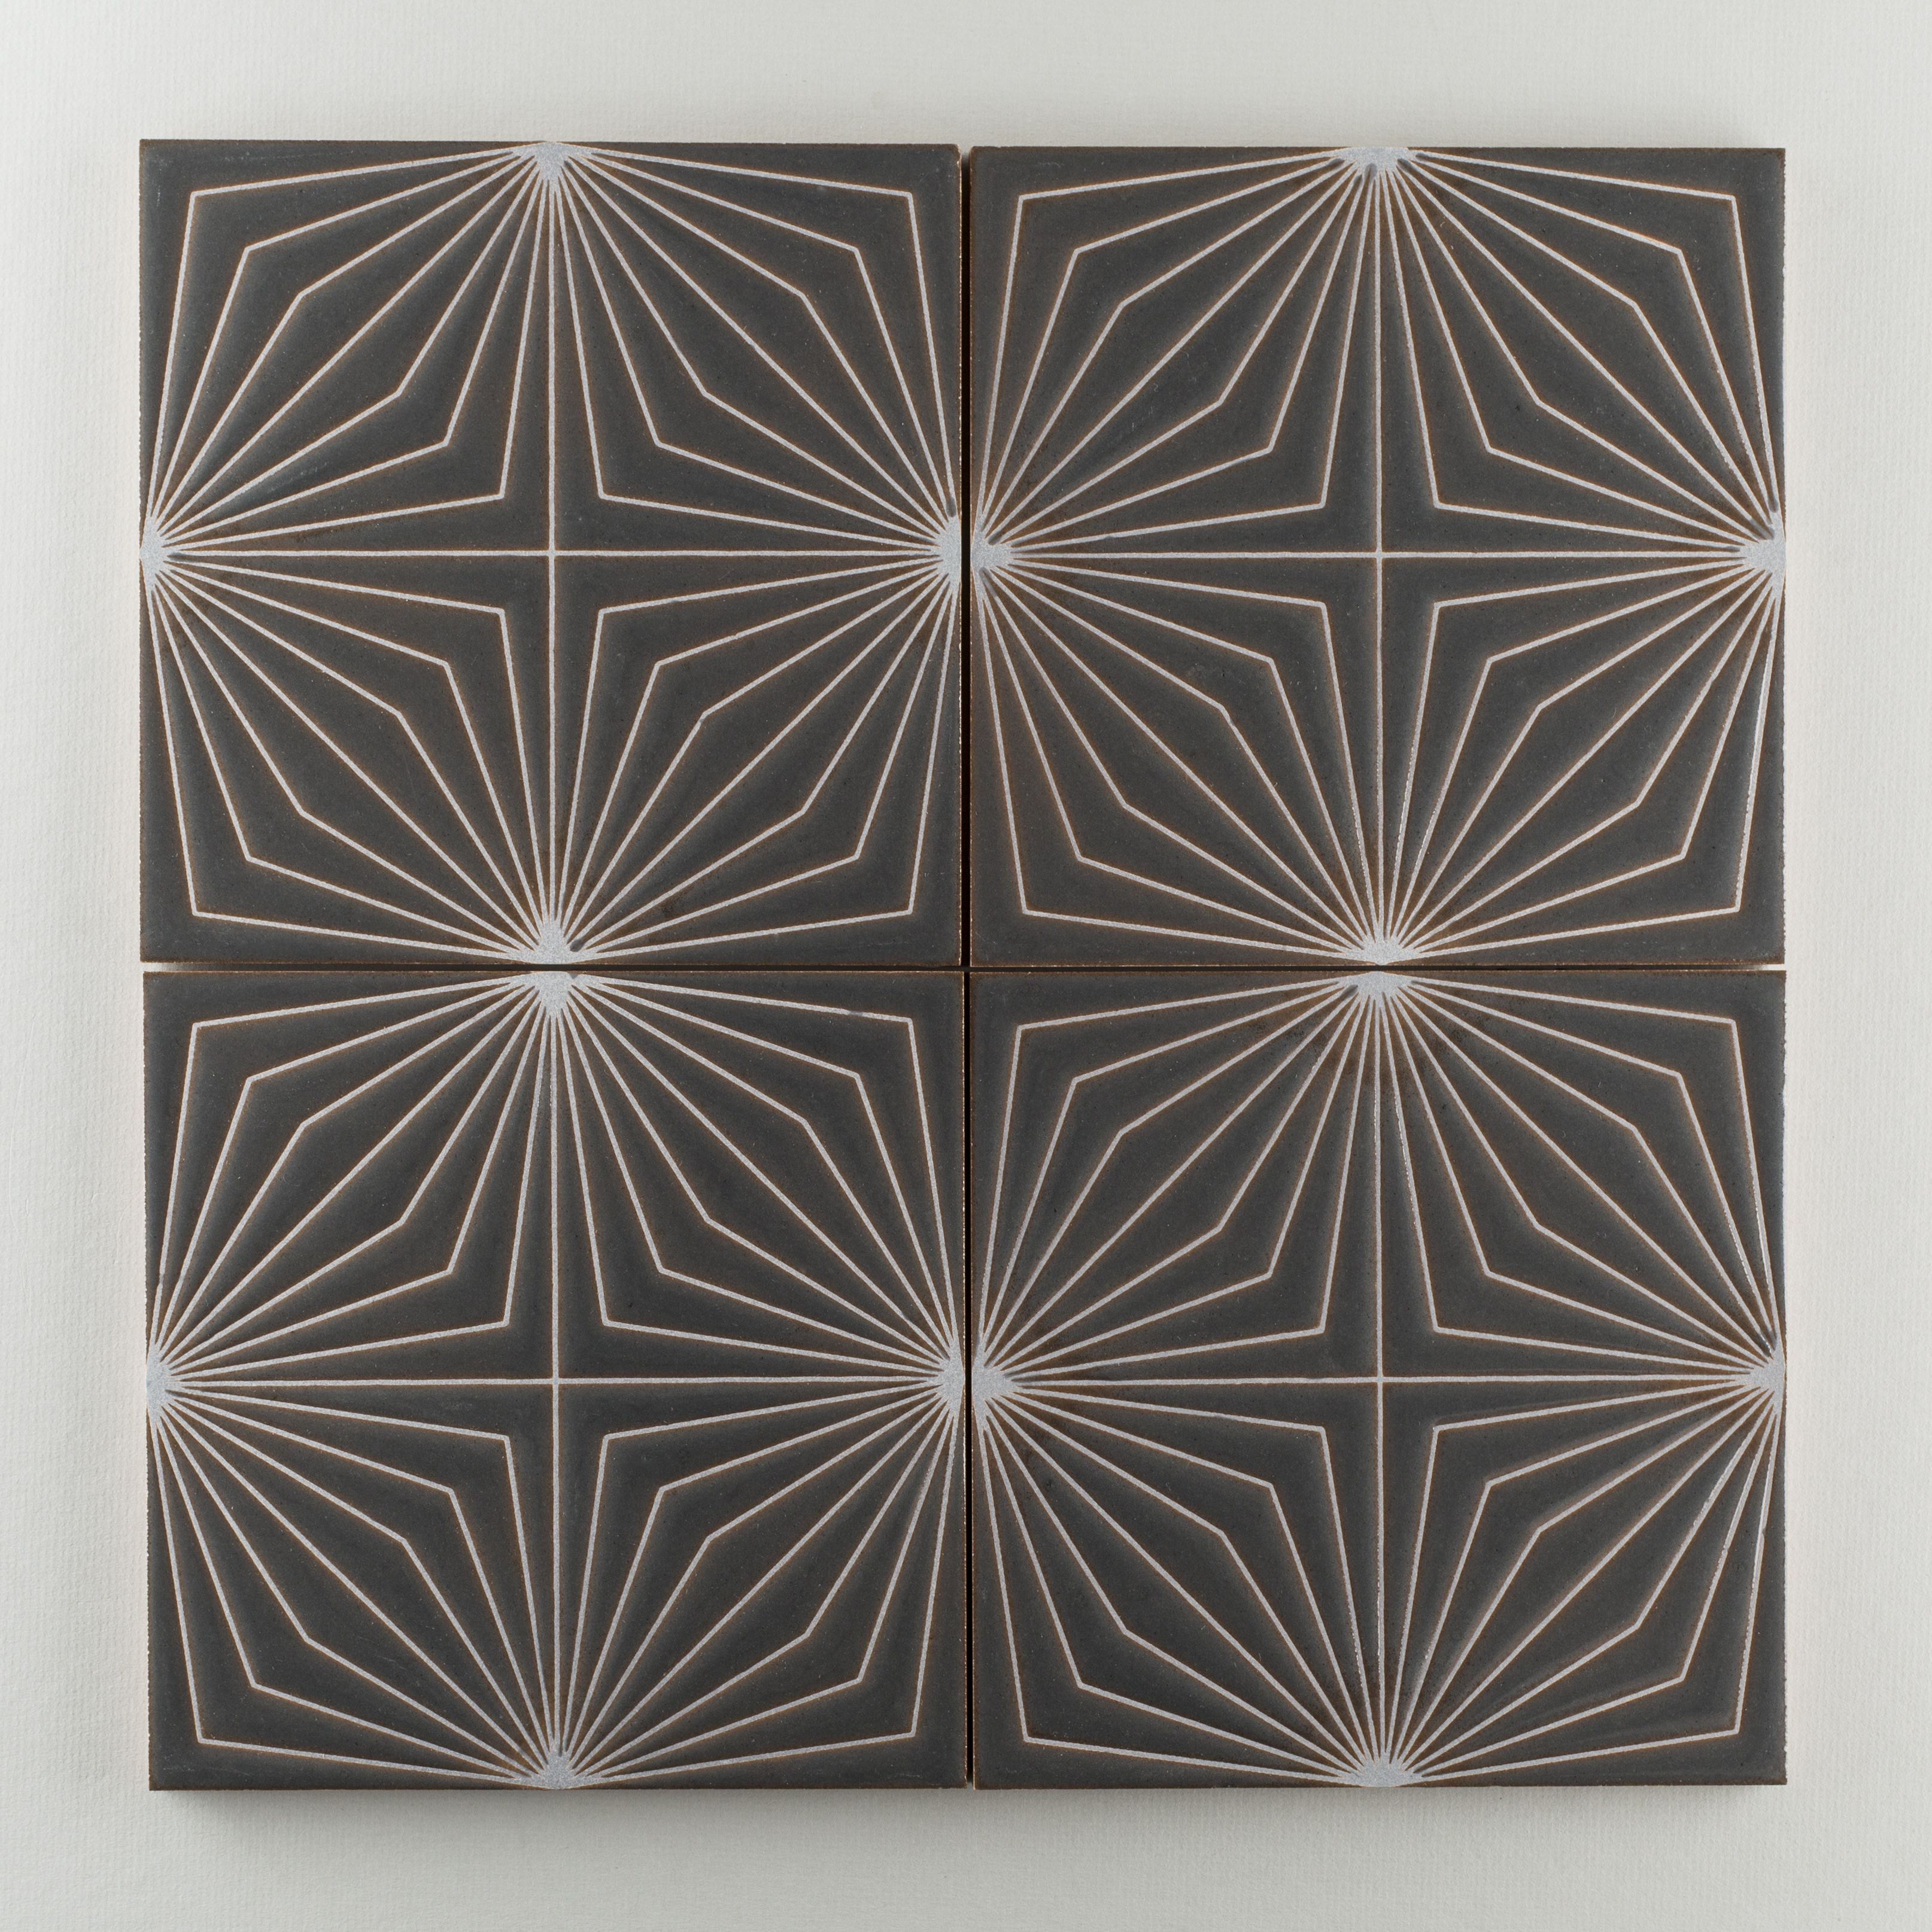 Fireclay's Starburst contemporary tile